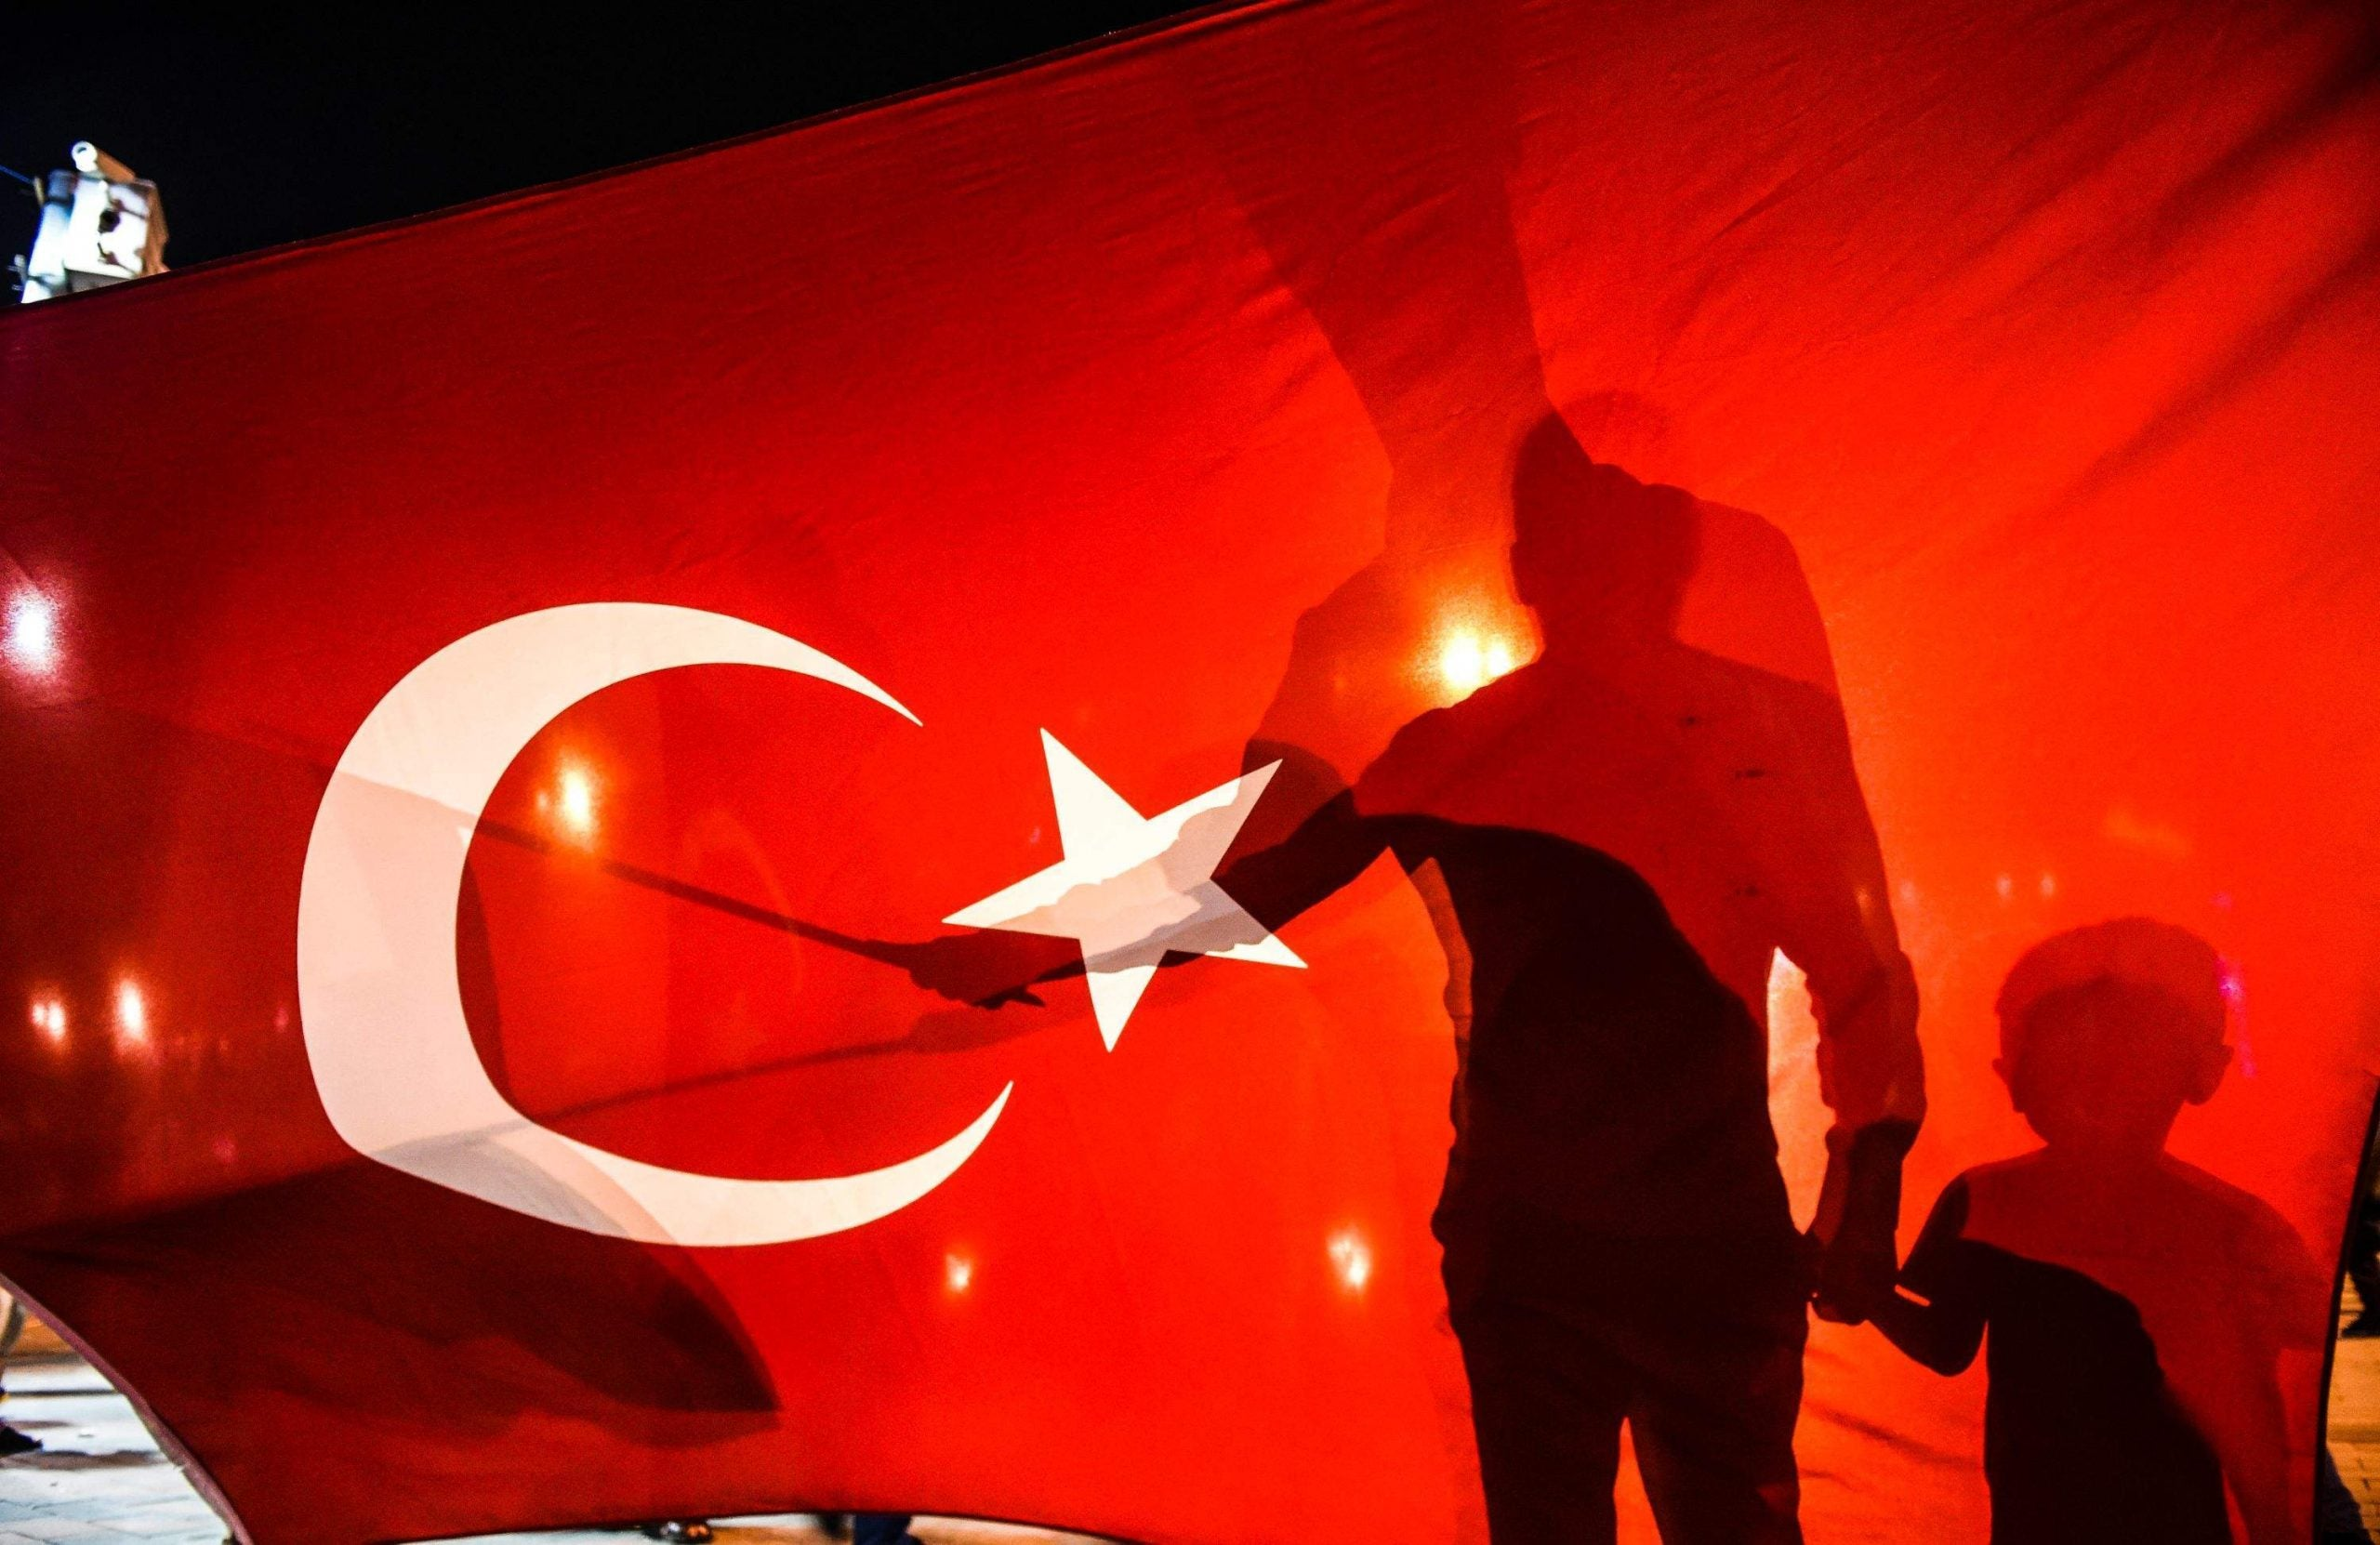 Turkey's darkest night: can democracy survive the failed coup?